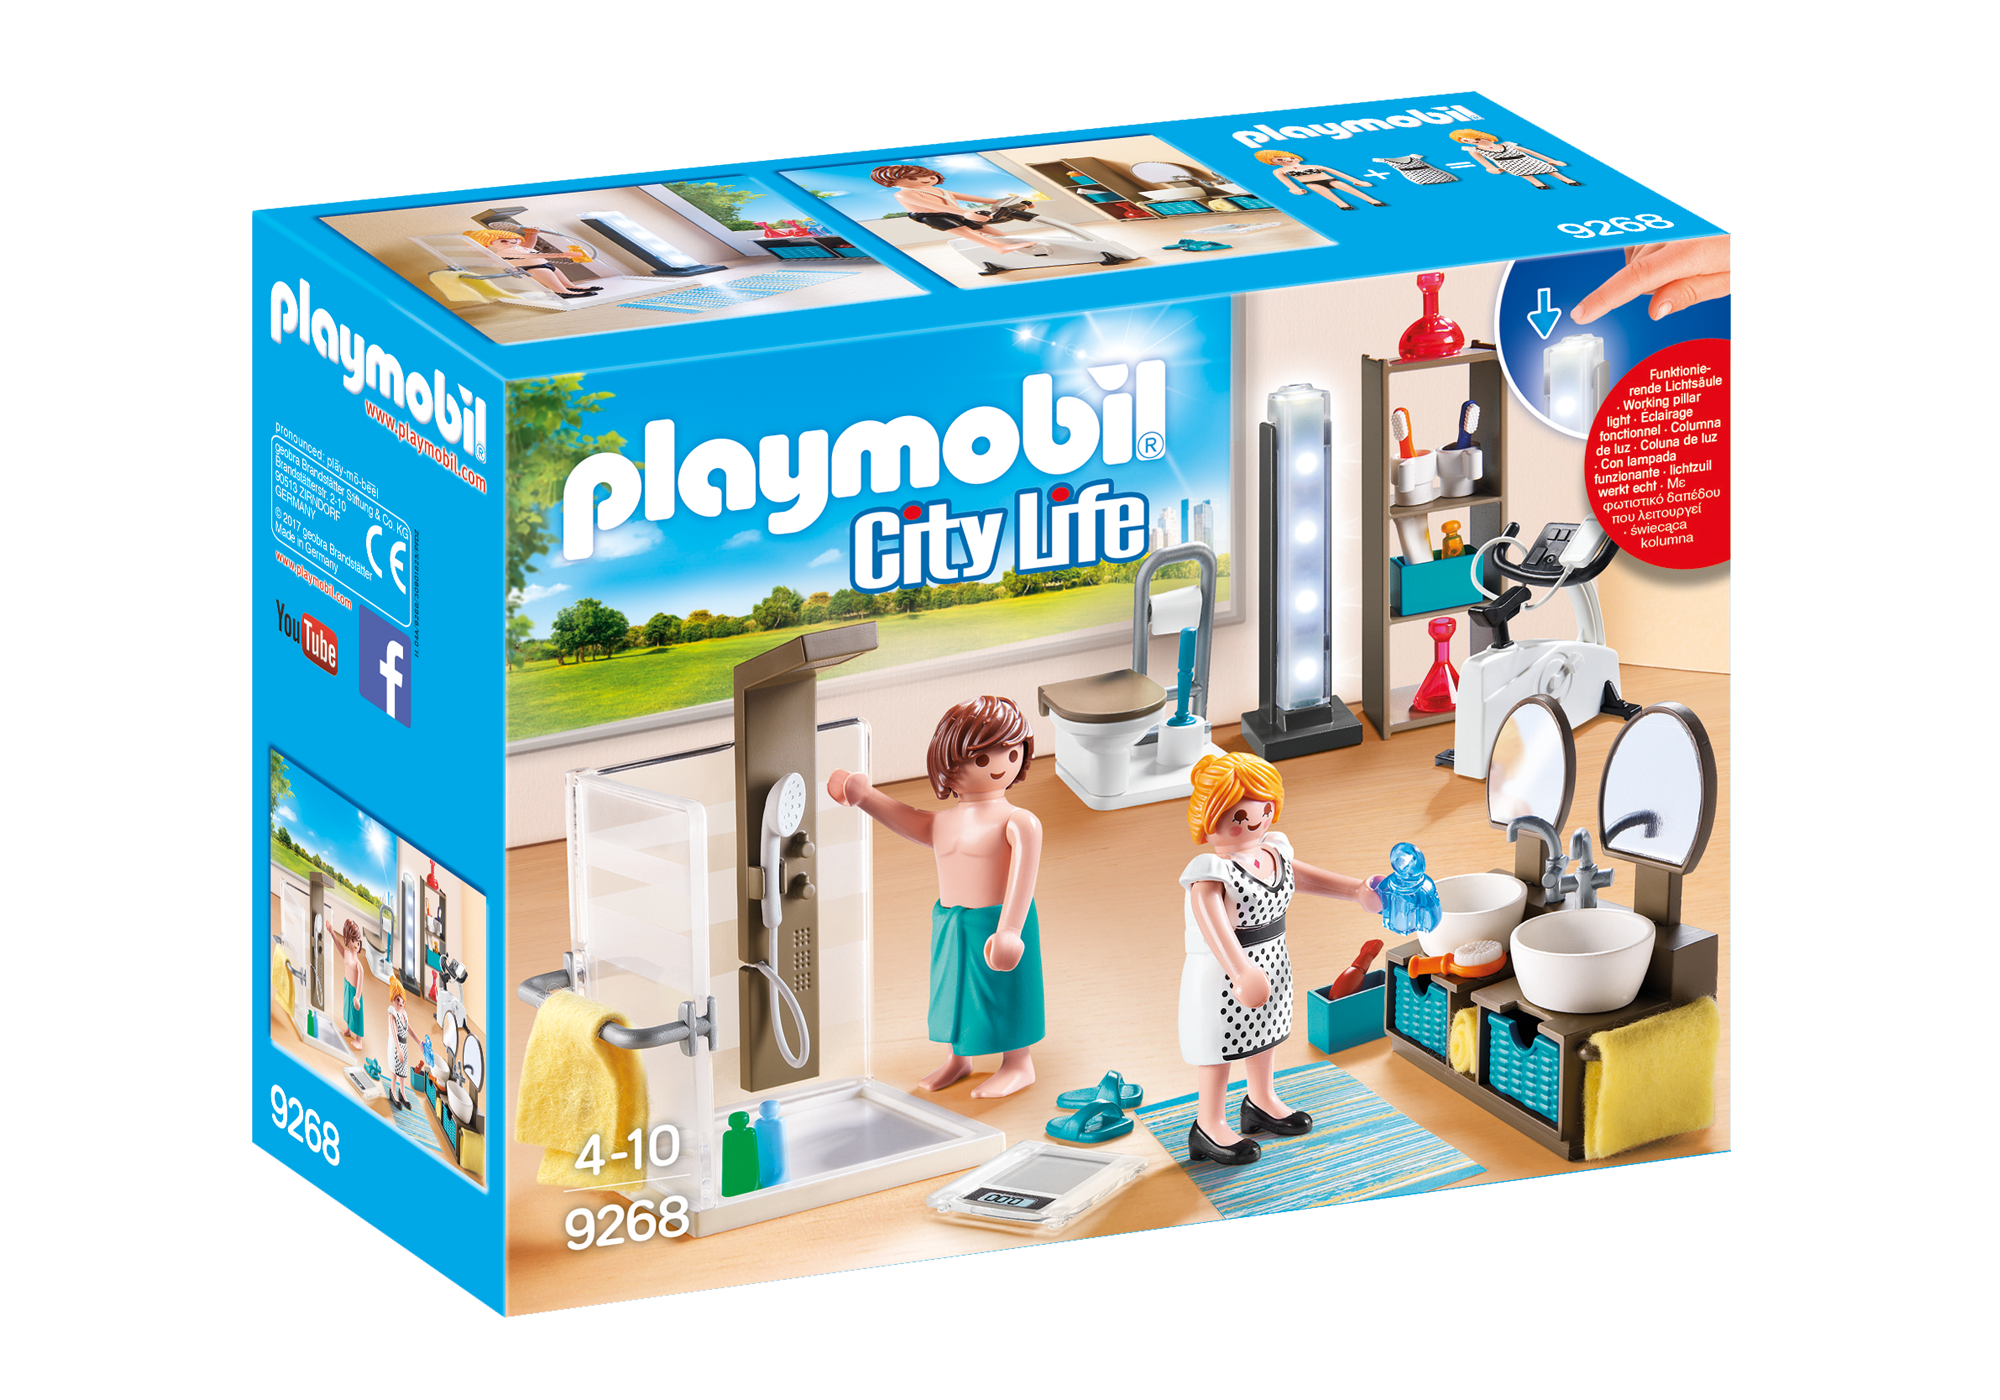 http://media.playmobil.com/i/playmobil/9268_product_box_front